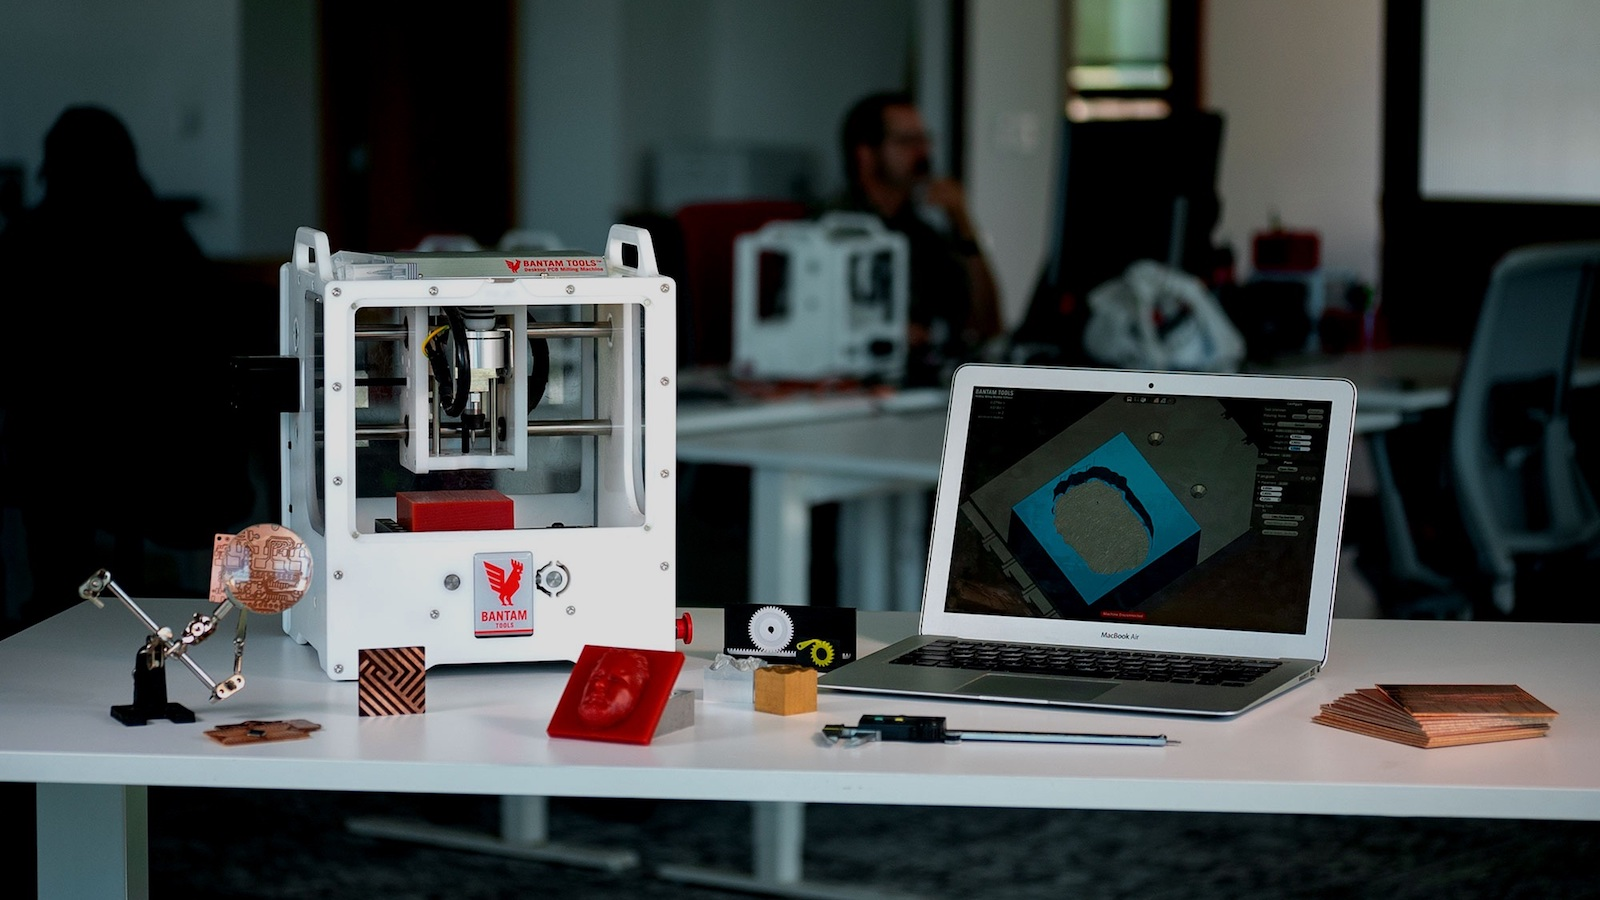 This CNC Milling Machine prototyping system brings aluminum creation in-house